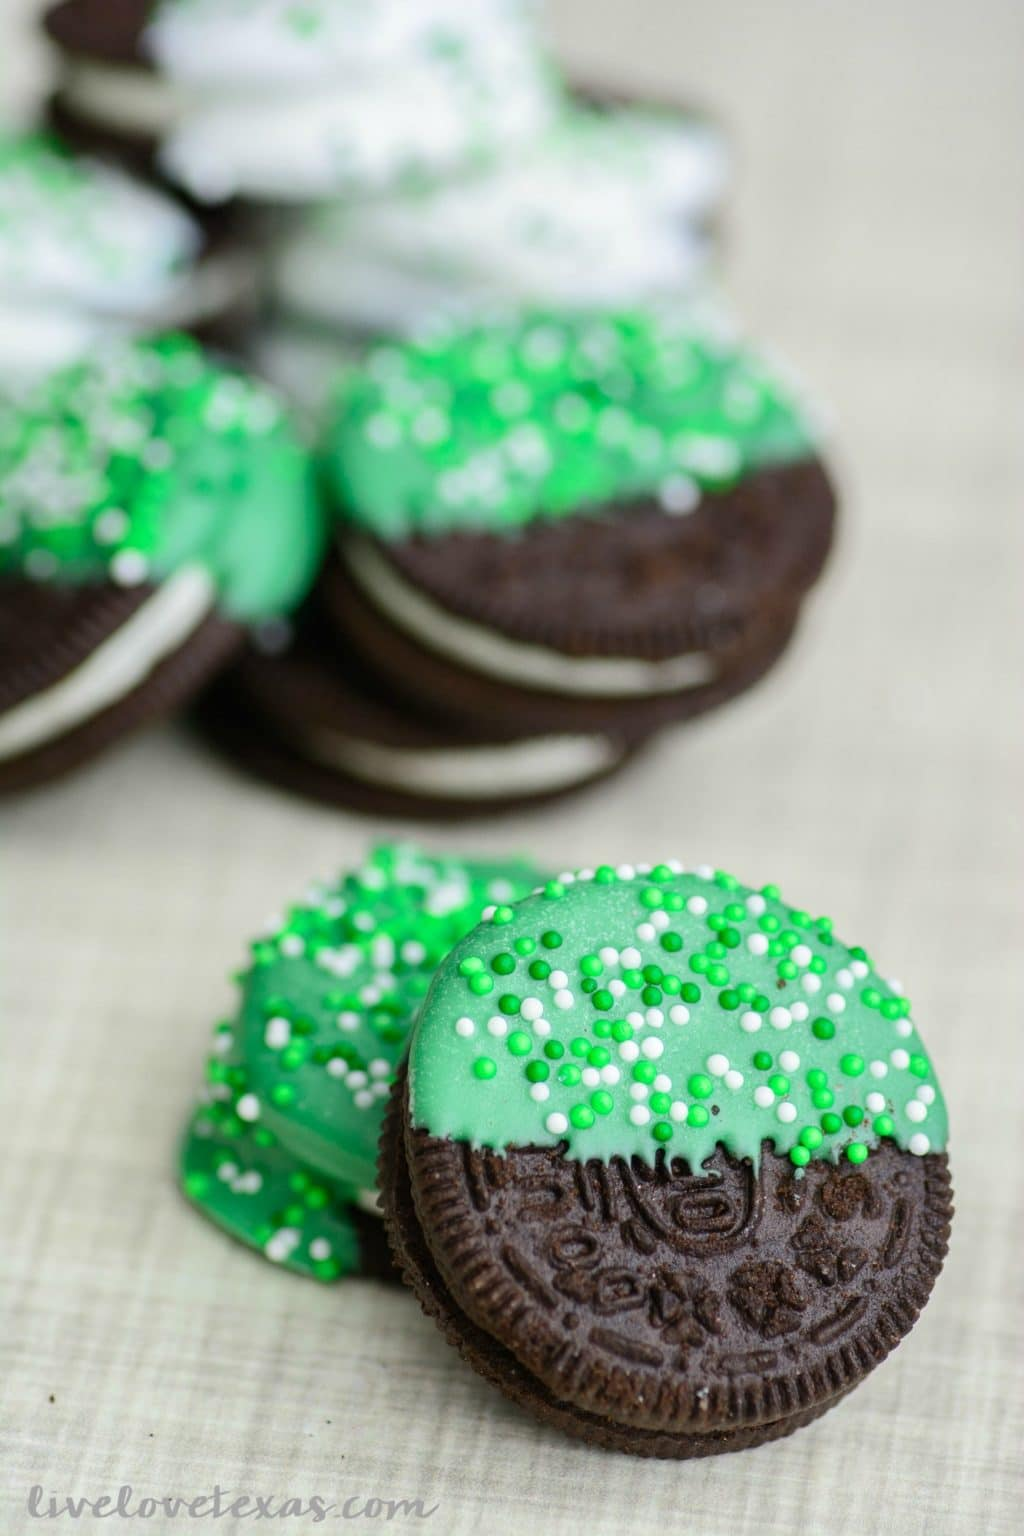 Looking for a last minute, yet easy St. Patrick's Day treat recipe? Check out these Chocolate Dipped Oreos for your party or a festive after school snack! #stpatricksday #stpatricksdayrecipes #stpatricksdaydesserts #stpatricksdayforkids #stpatricksdaycookies #easyrecipes #easydesserts #dessertsforkids